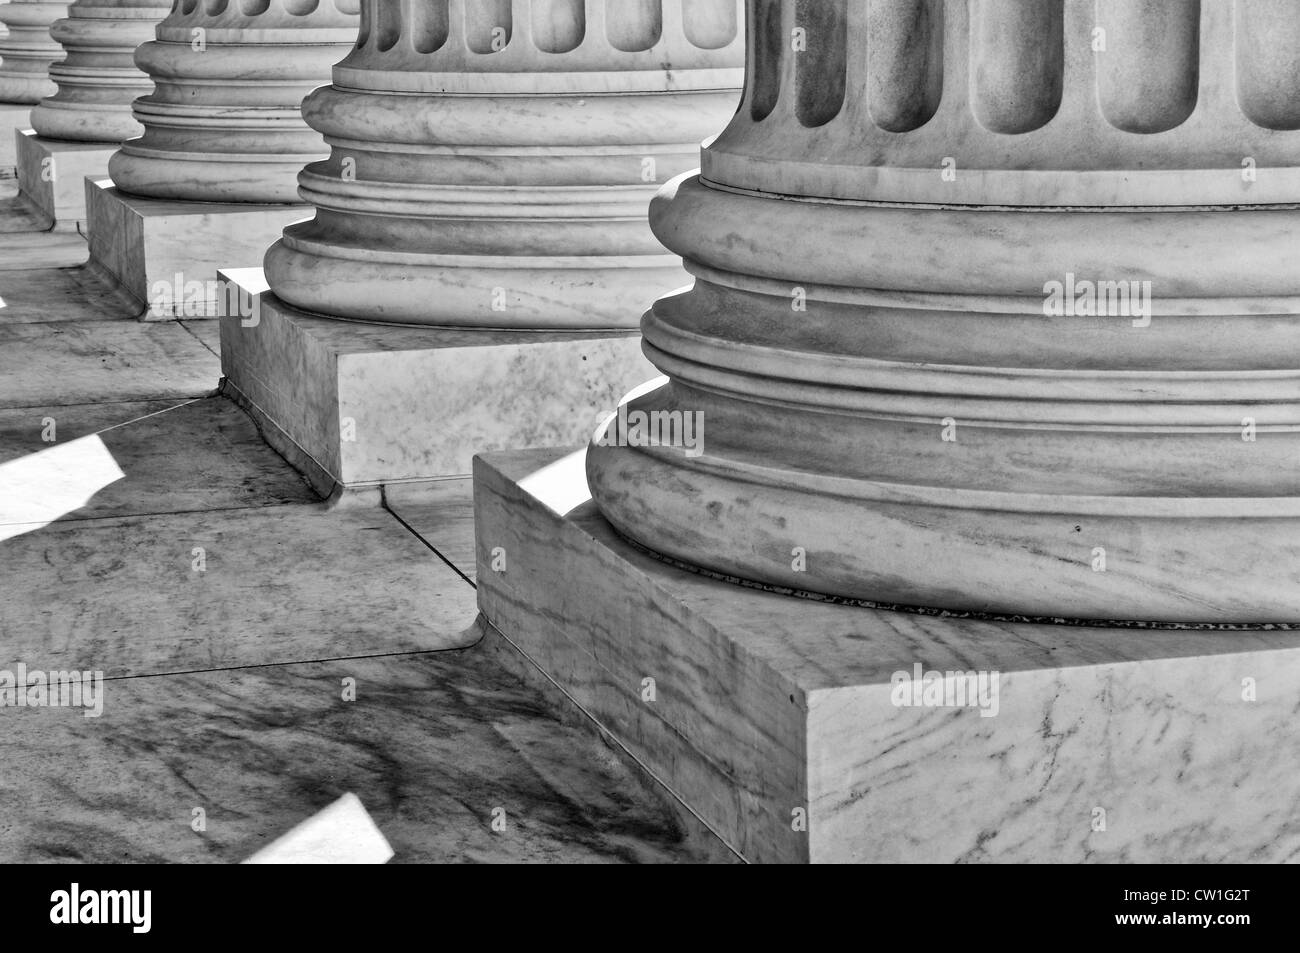 Pillars of Law and Justice - Stock Image